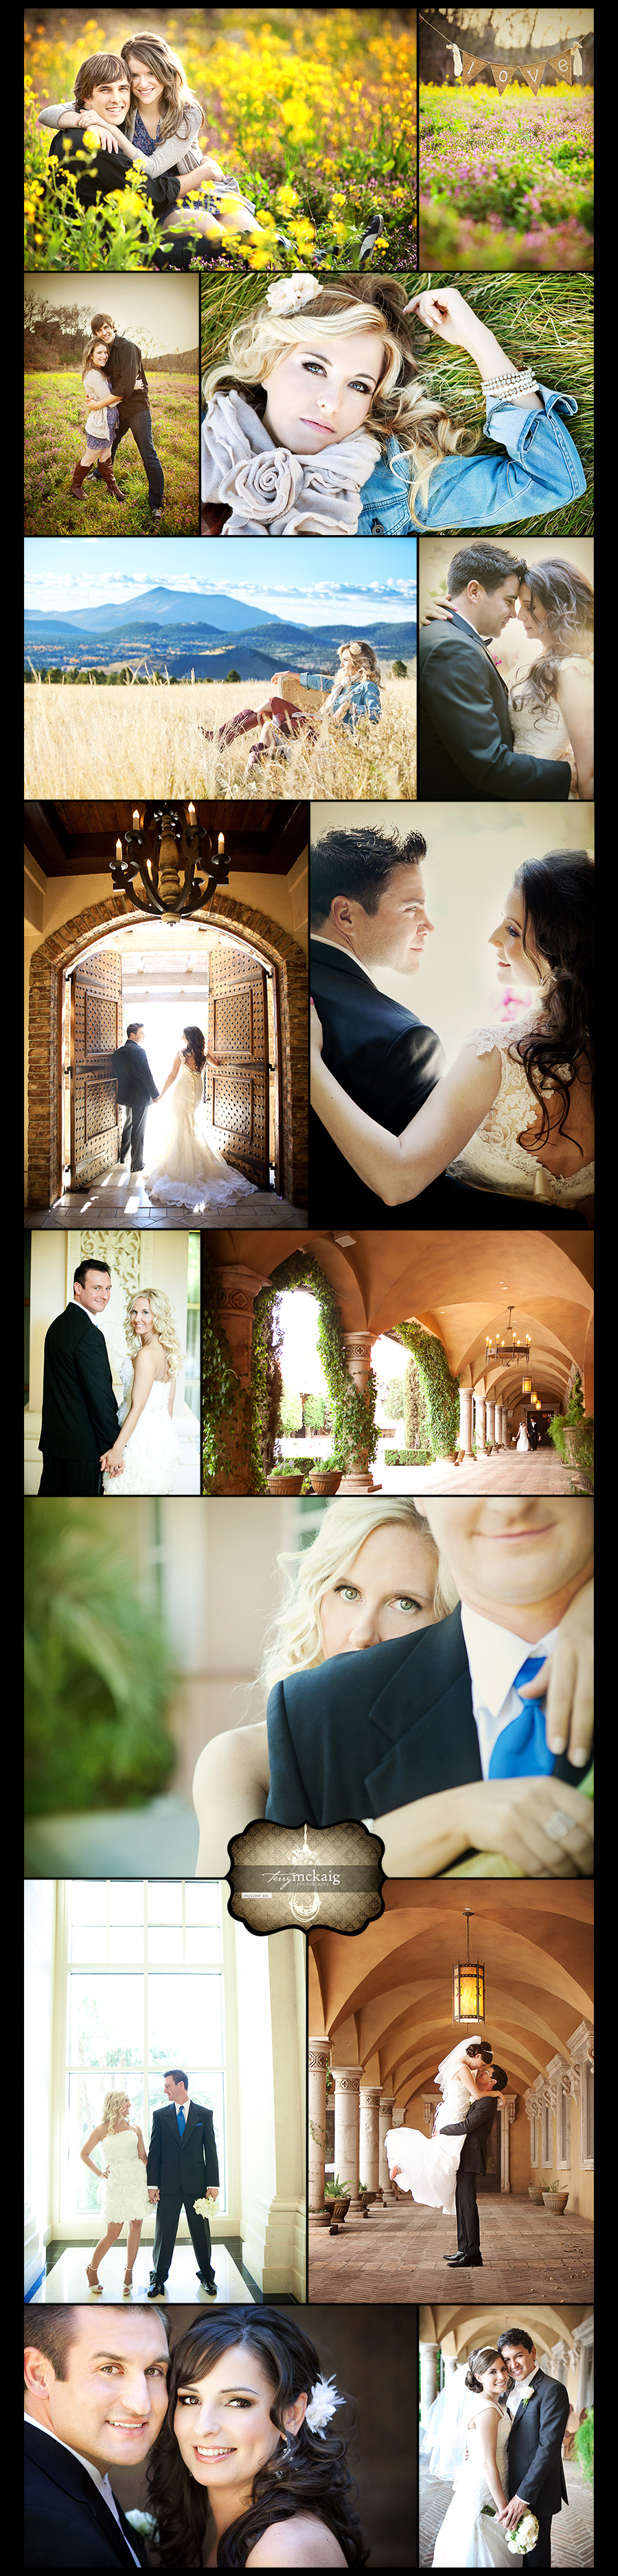 wedding couples phoenix wedding photographer happy new year